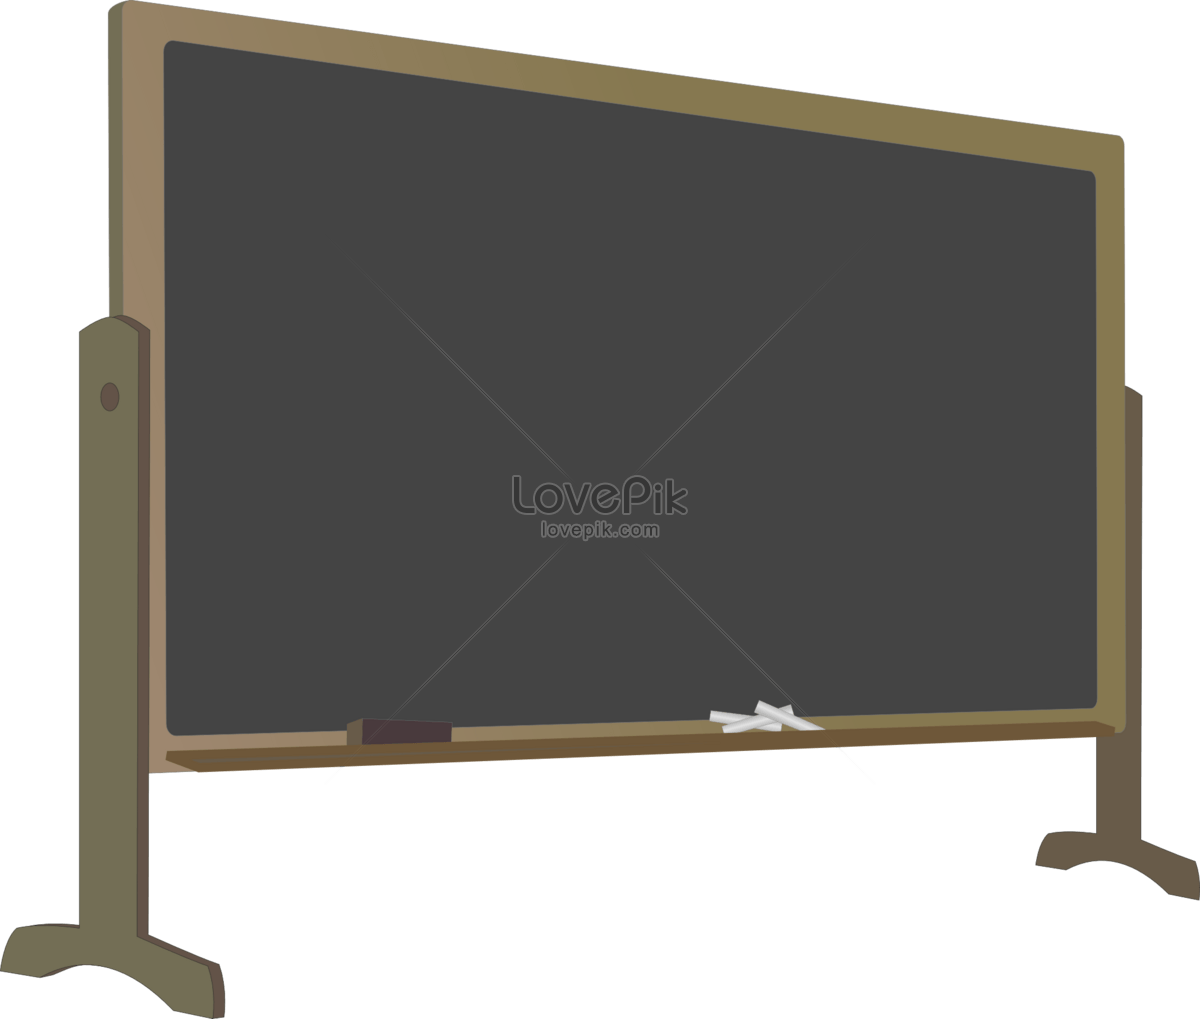 Blackboard drawing creative. Illustrations photo image picture